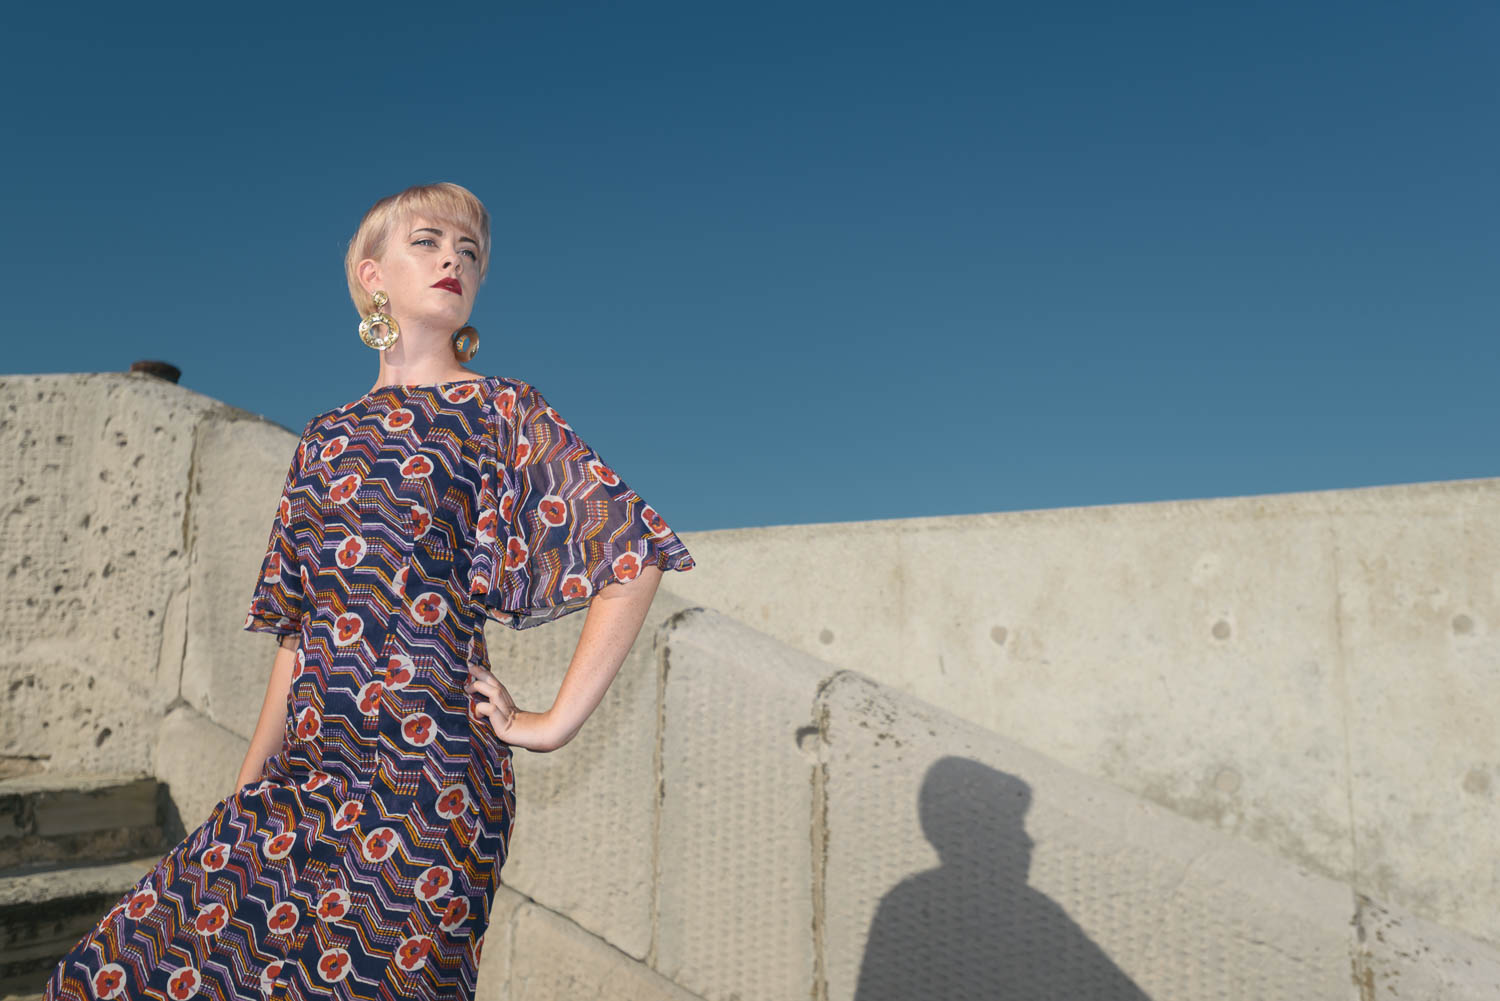 A blue sky in September - another image from the fashion shoot